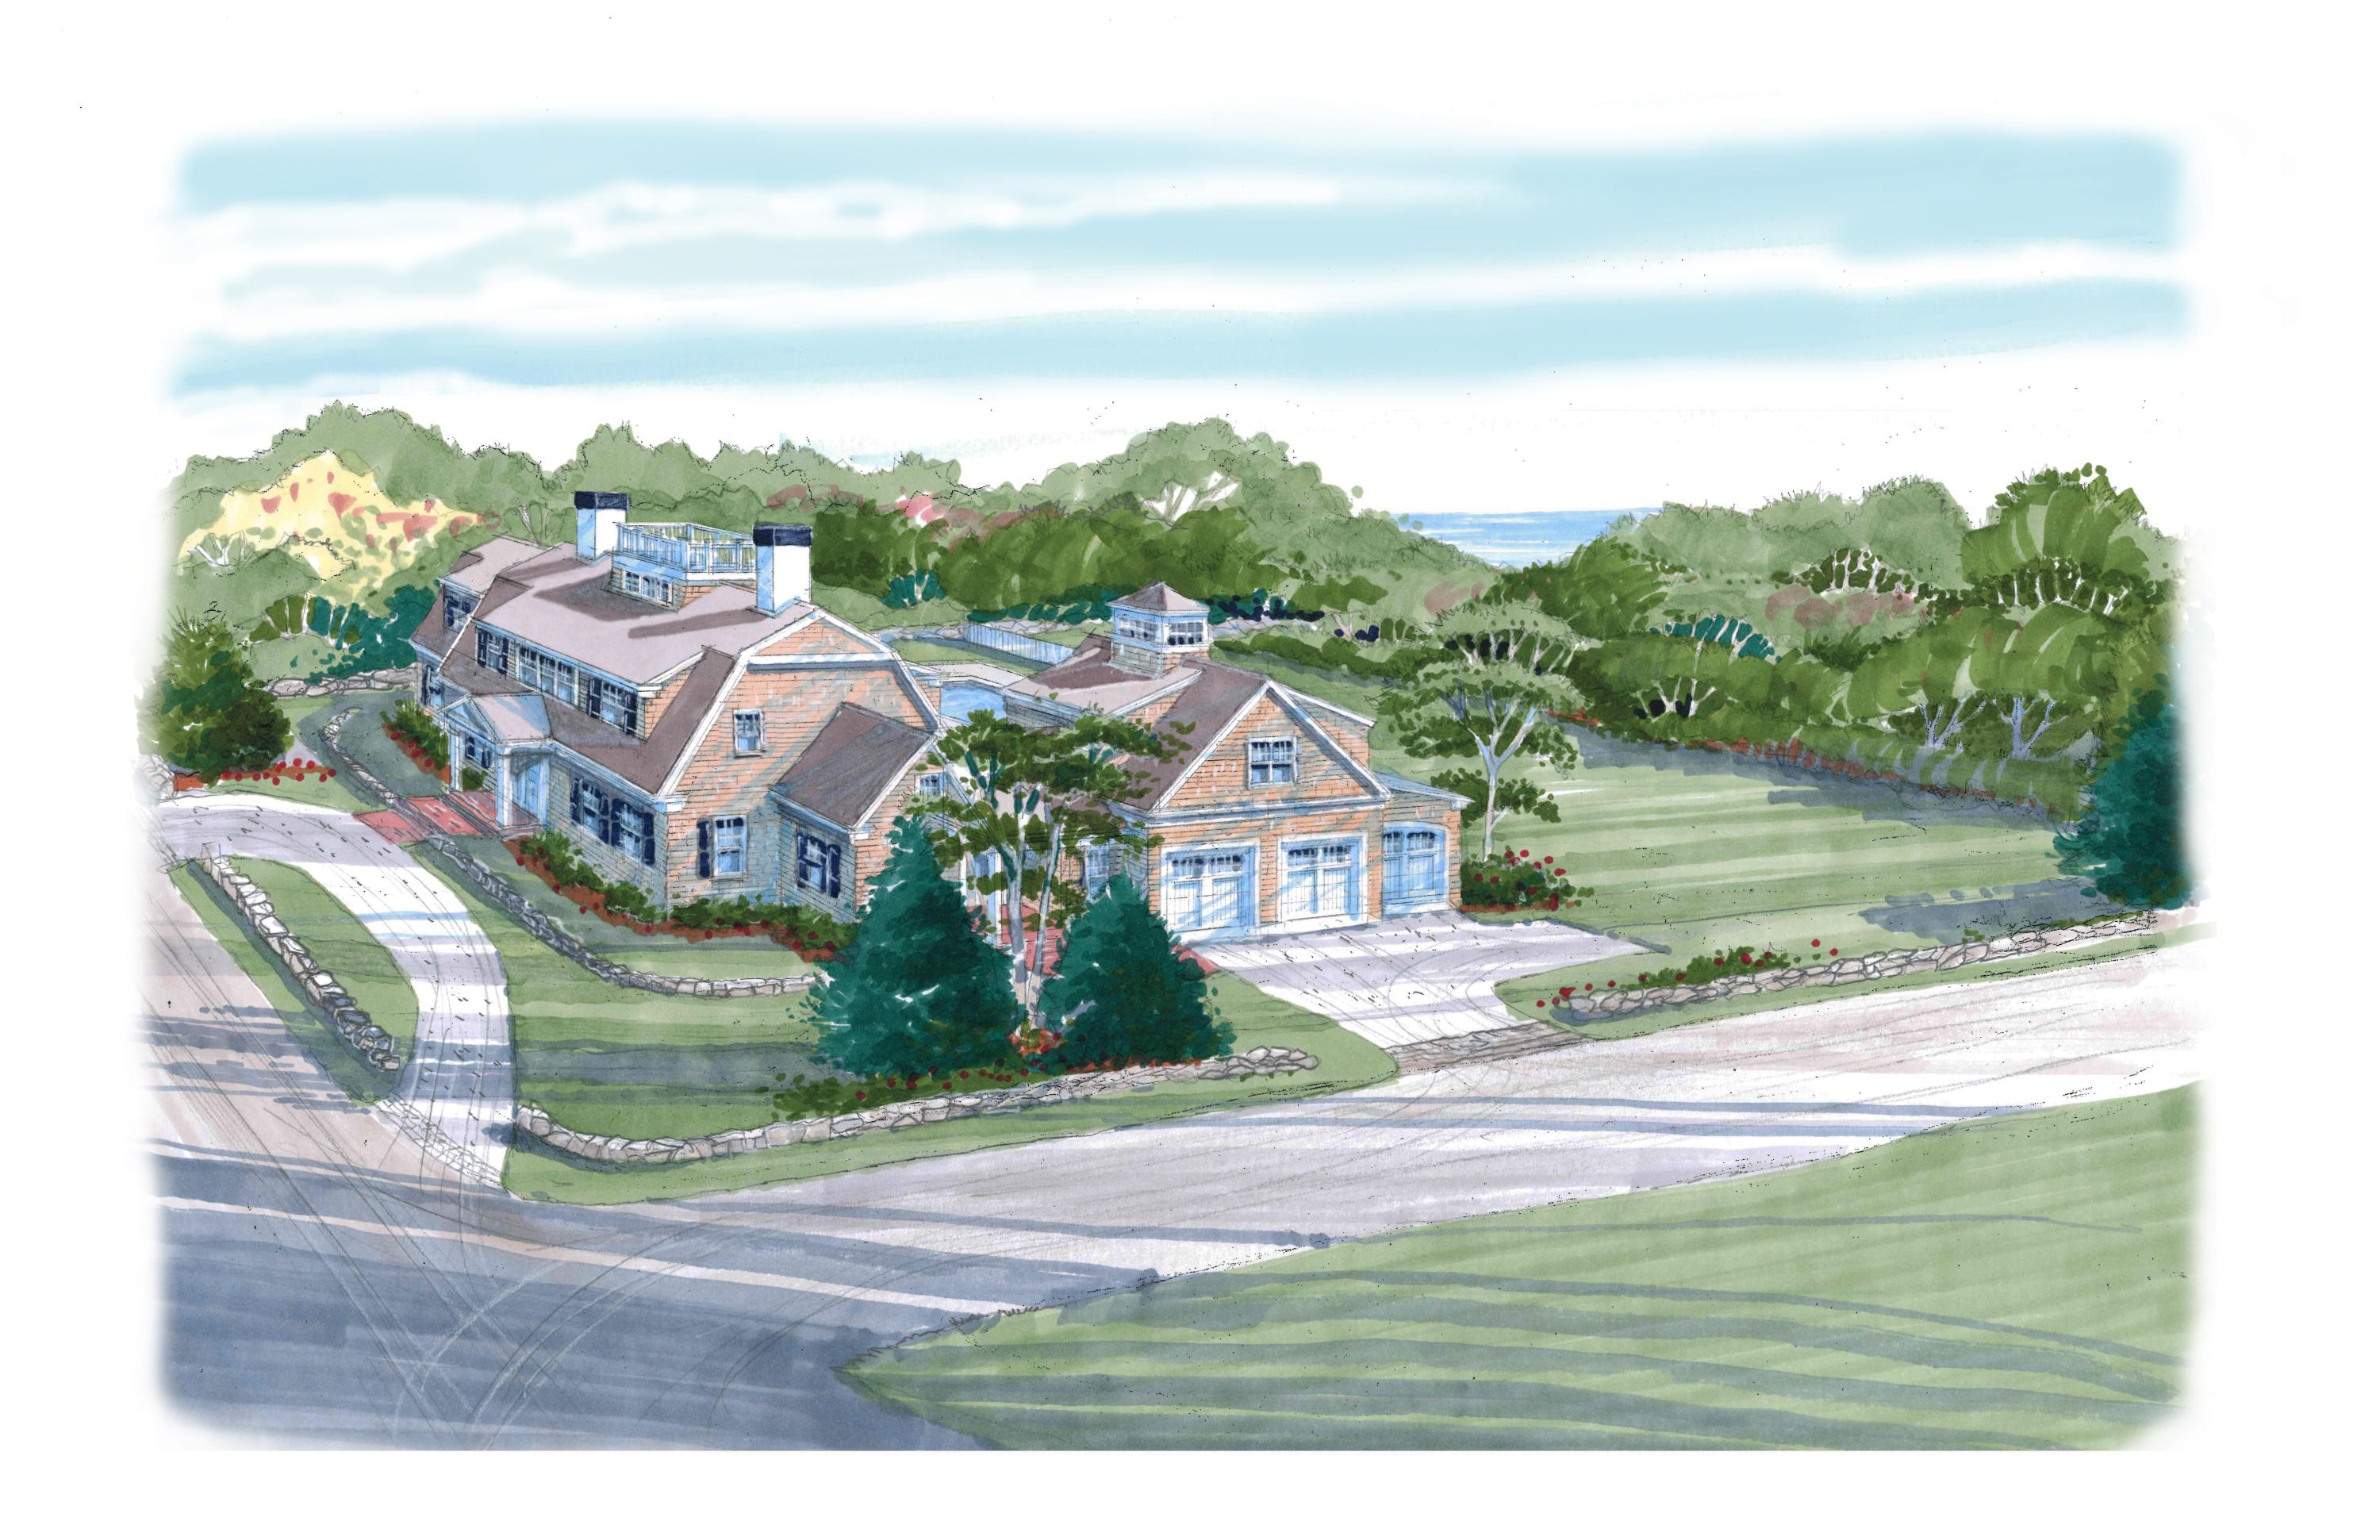 click to view more details 60 Sesuit Rd , East Dennis, MA 02641